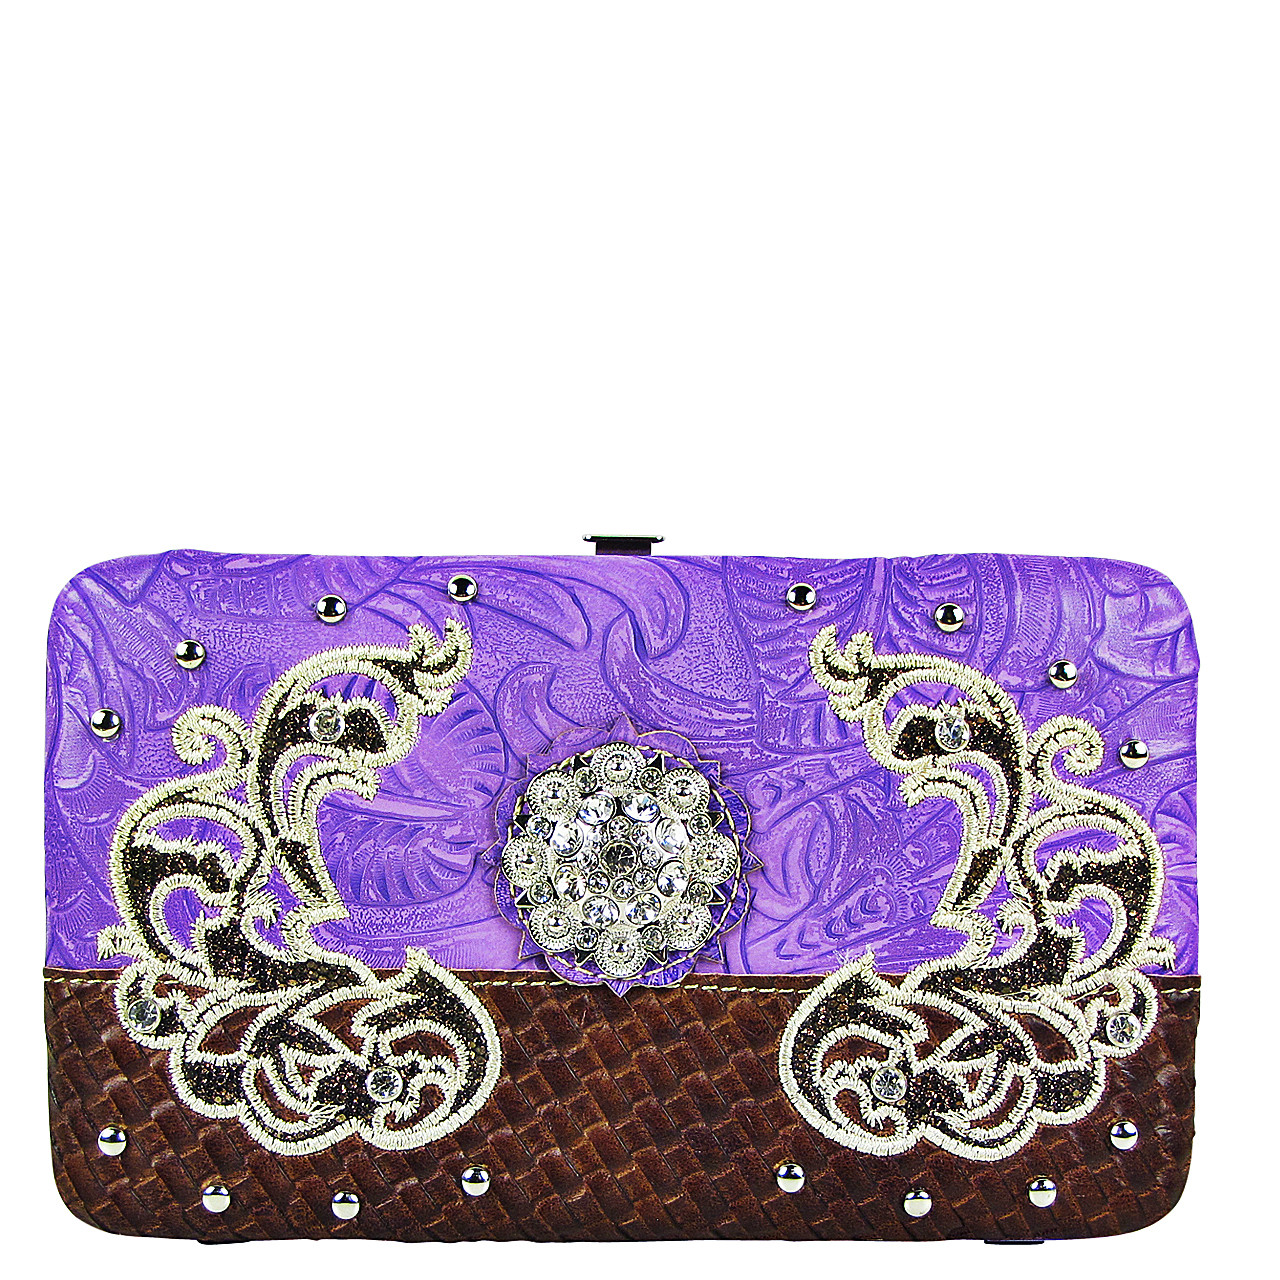 PURPLE FLOWER RHINESTONE STITCHED DESIGN LOOK FLAT THICK WALLET FW2-12125PPL